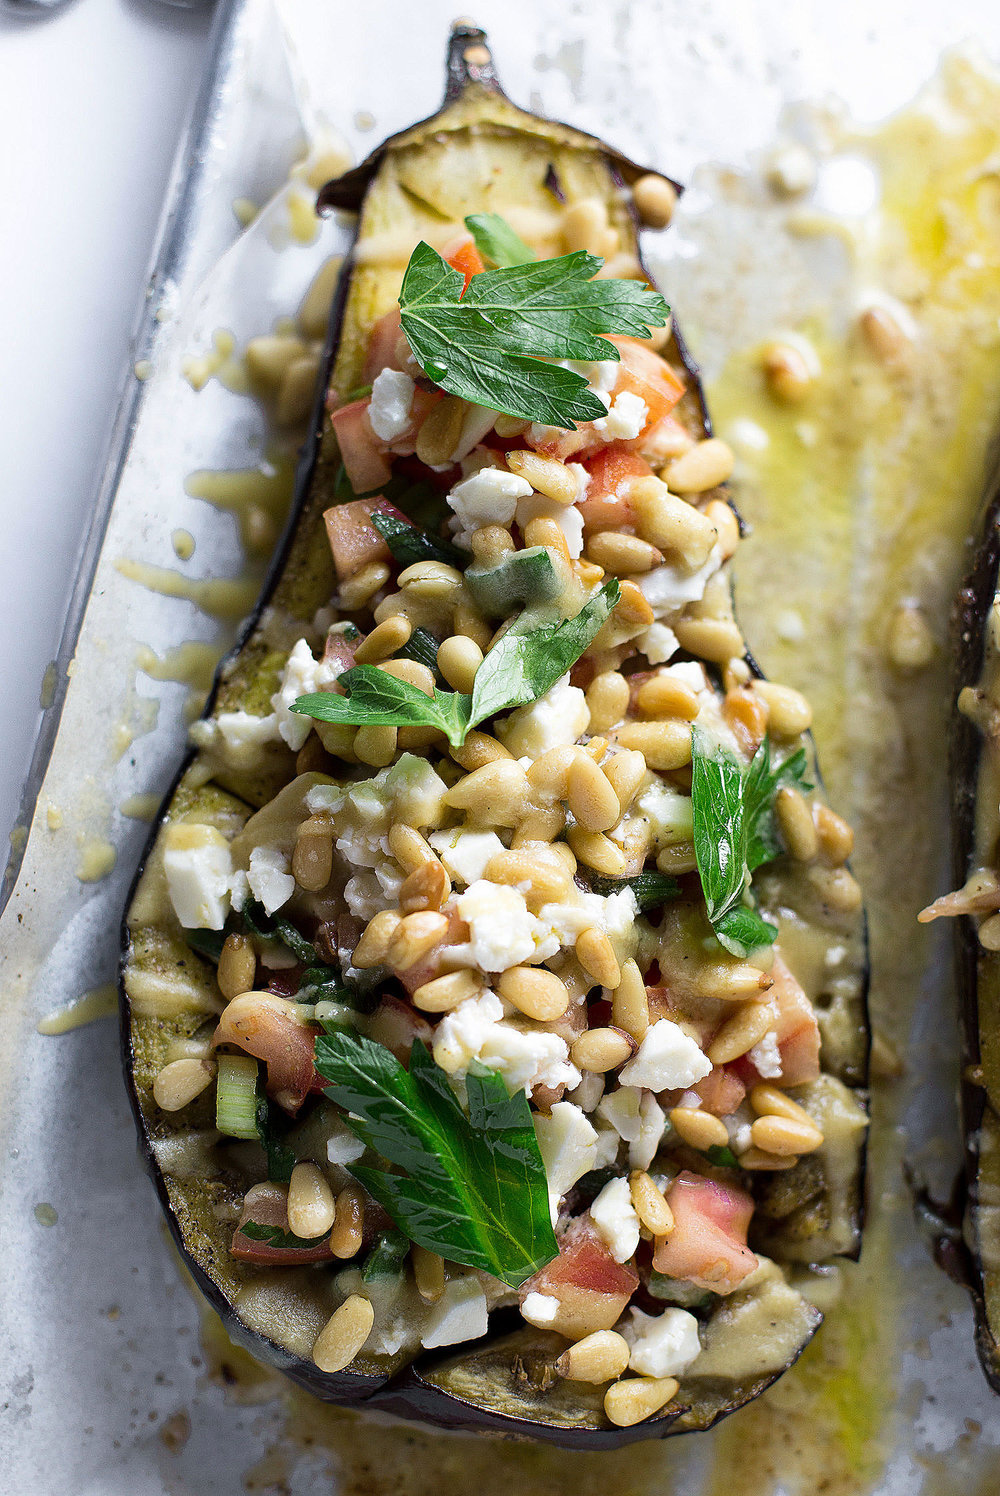 Roasted Eggplant with Tomatoes, Scallions, and Tahini: tender roasted eggplant halves with veggies, pine nuts, feta, and an addictive tahini dressing. | TrufflesandTrends.com